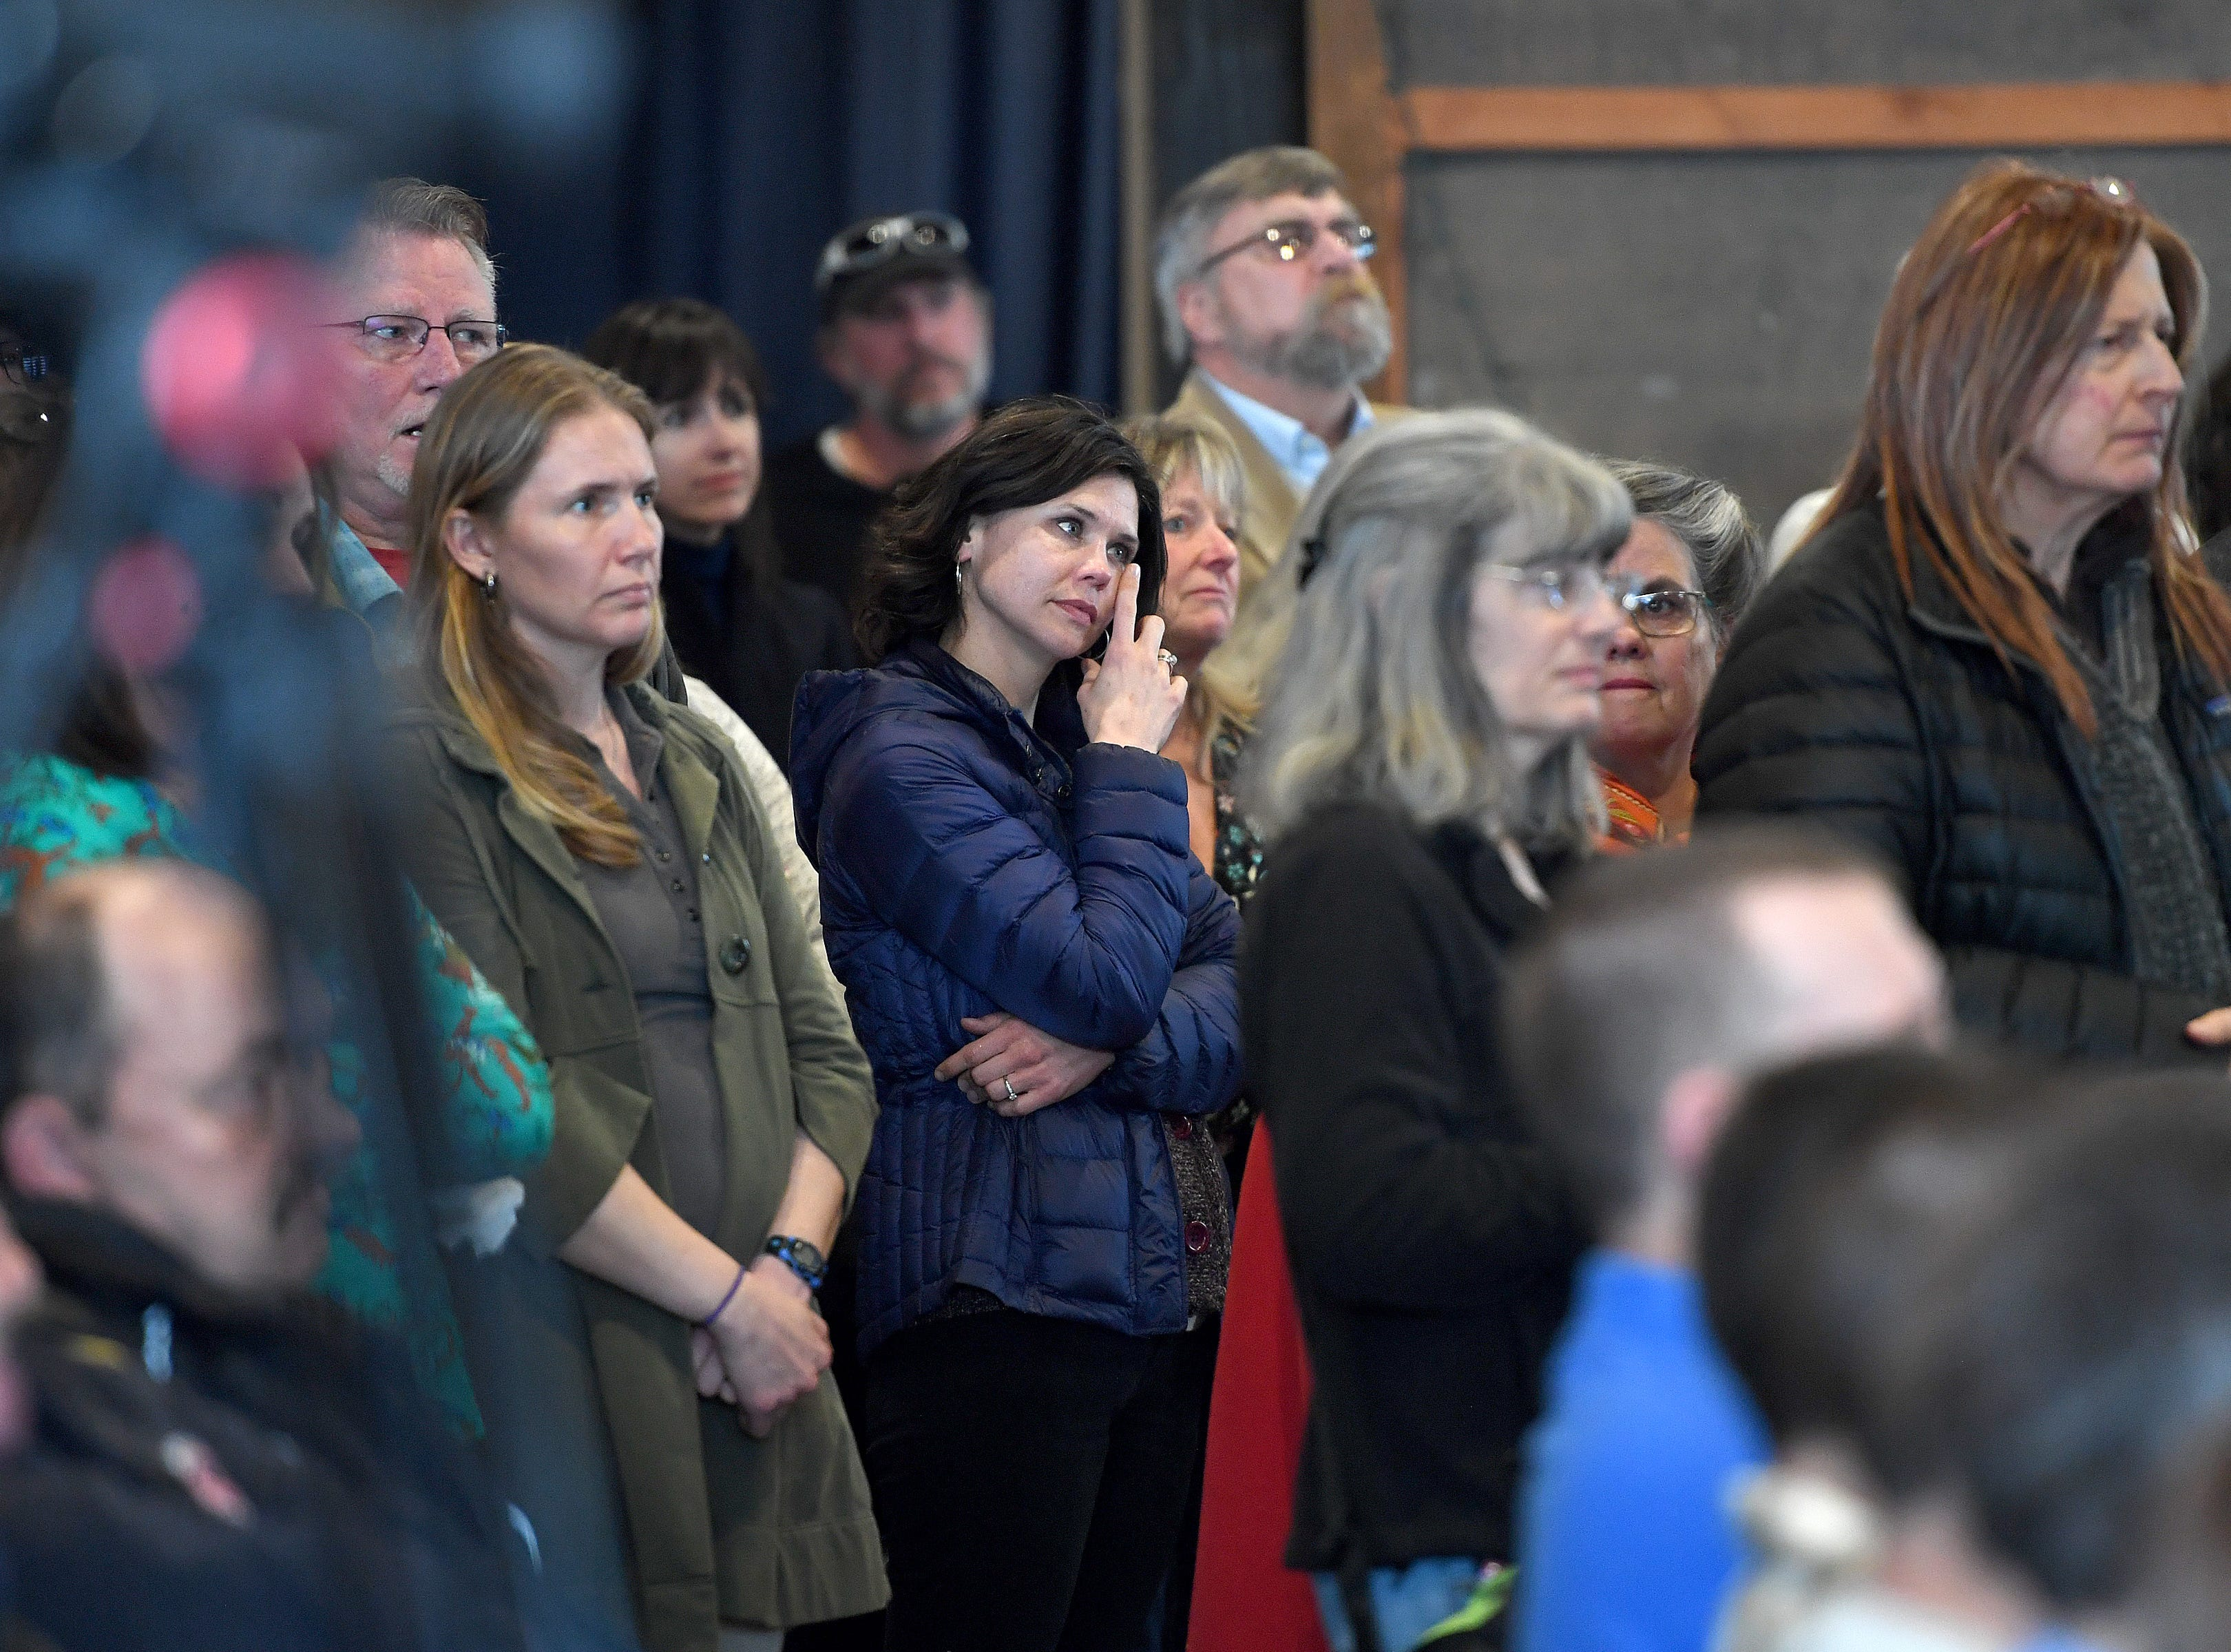 Friends, family and coworkers gathered to honor the life of Karen Shuart at the Salvage Station on Feb. 15, 2019. Shuart was an Asheville firefighter and died of cancer last year.